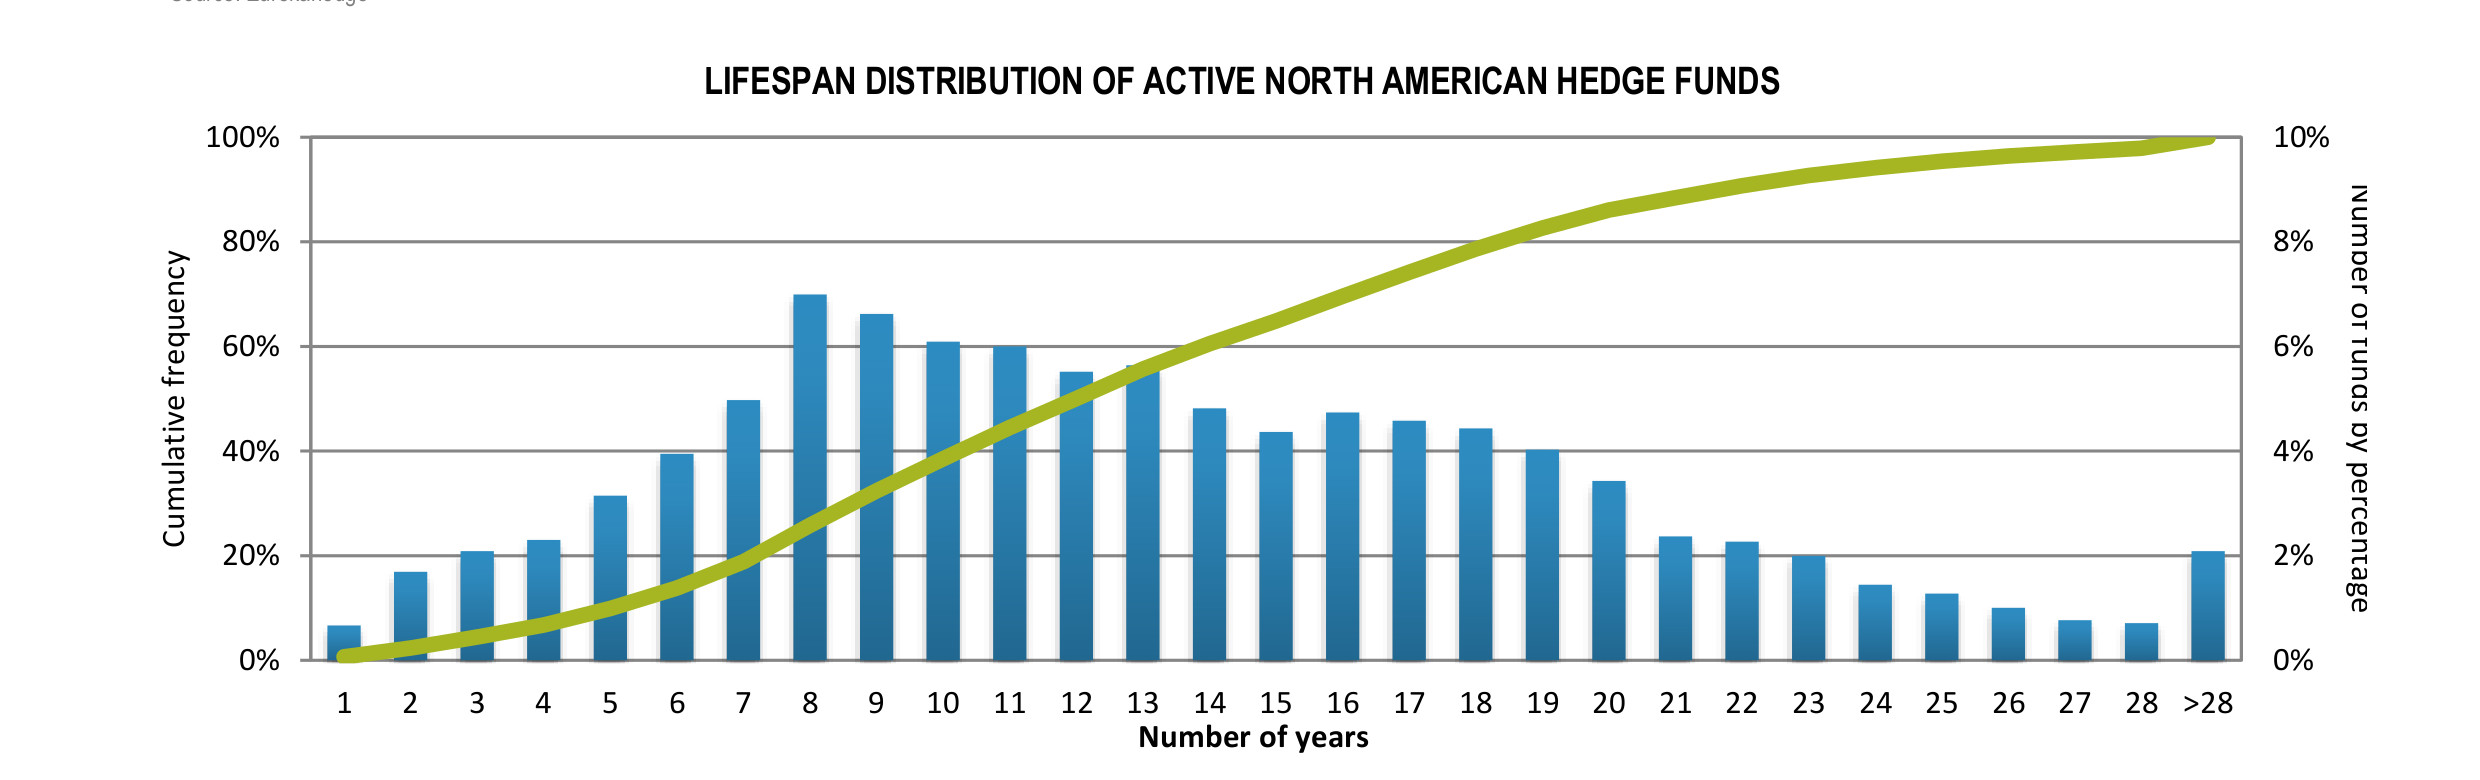 https://www.eurekahedge.com/content/images/news/infographics/Eurekahedge-Hedge-Funds-Infographic-Aug-2021-North-American-Hedge-Funds-Lifespan-Active-Funds.jpg